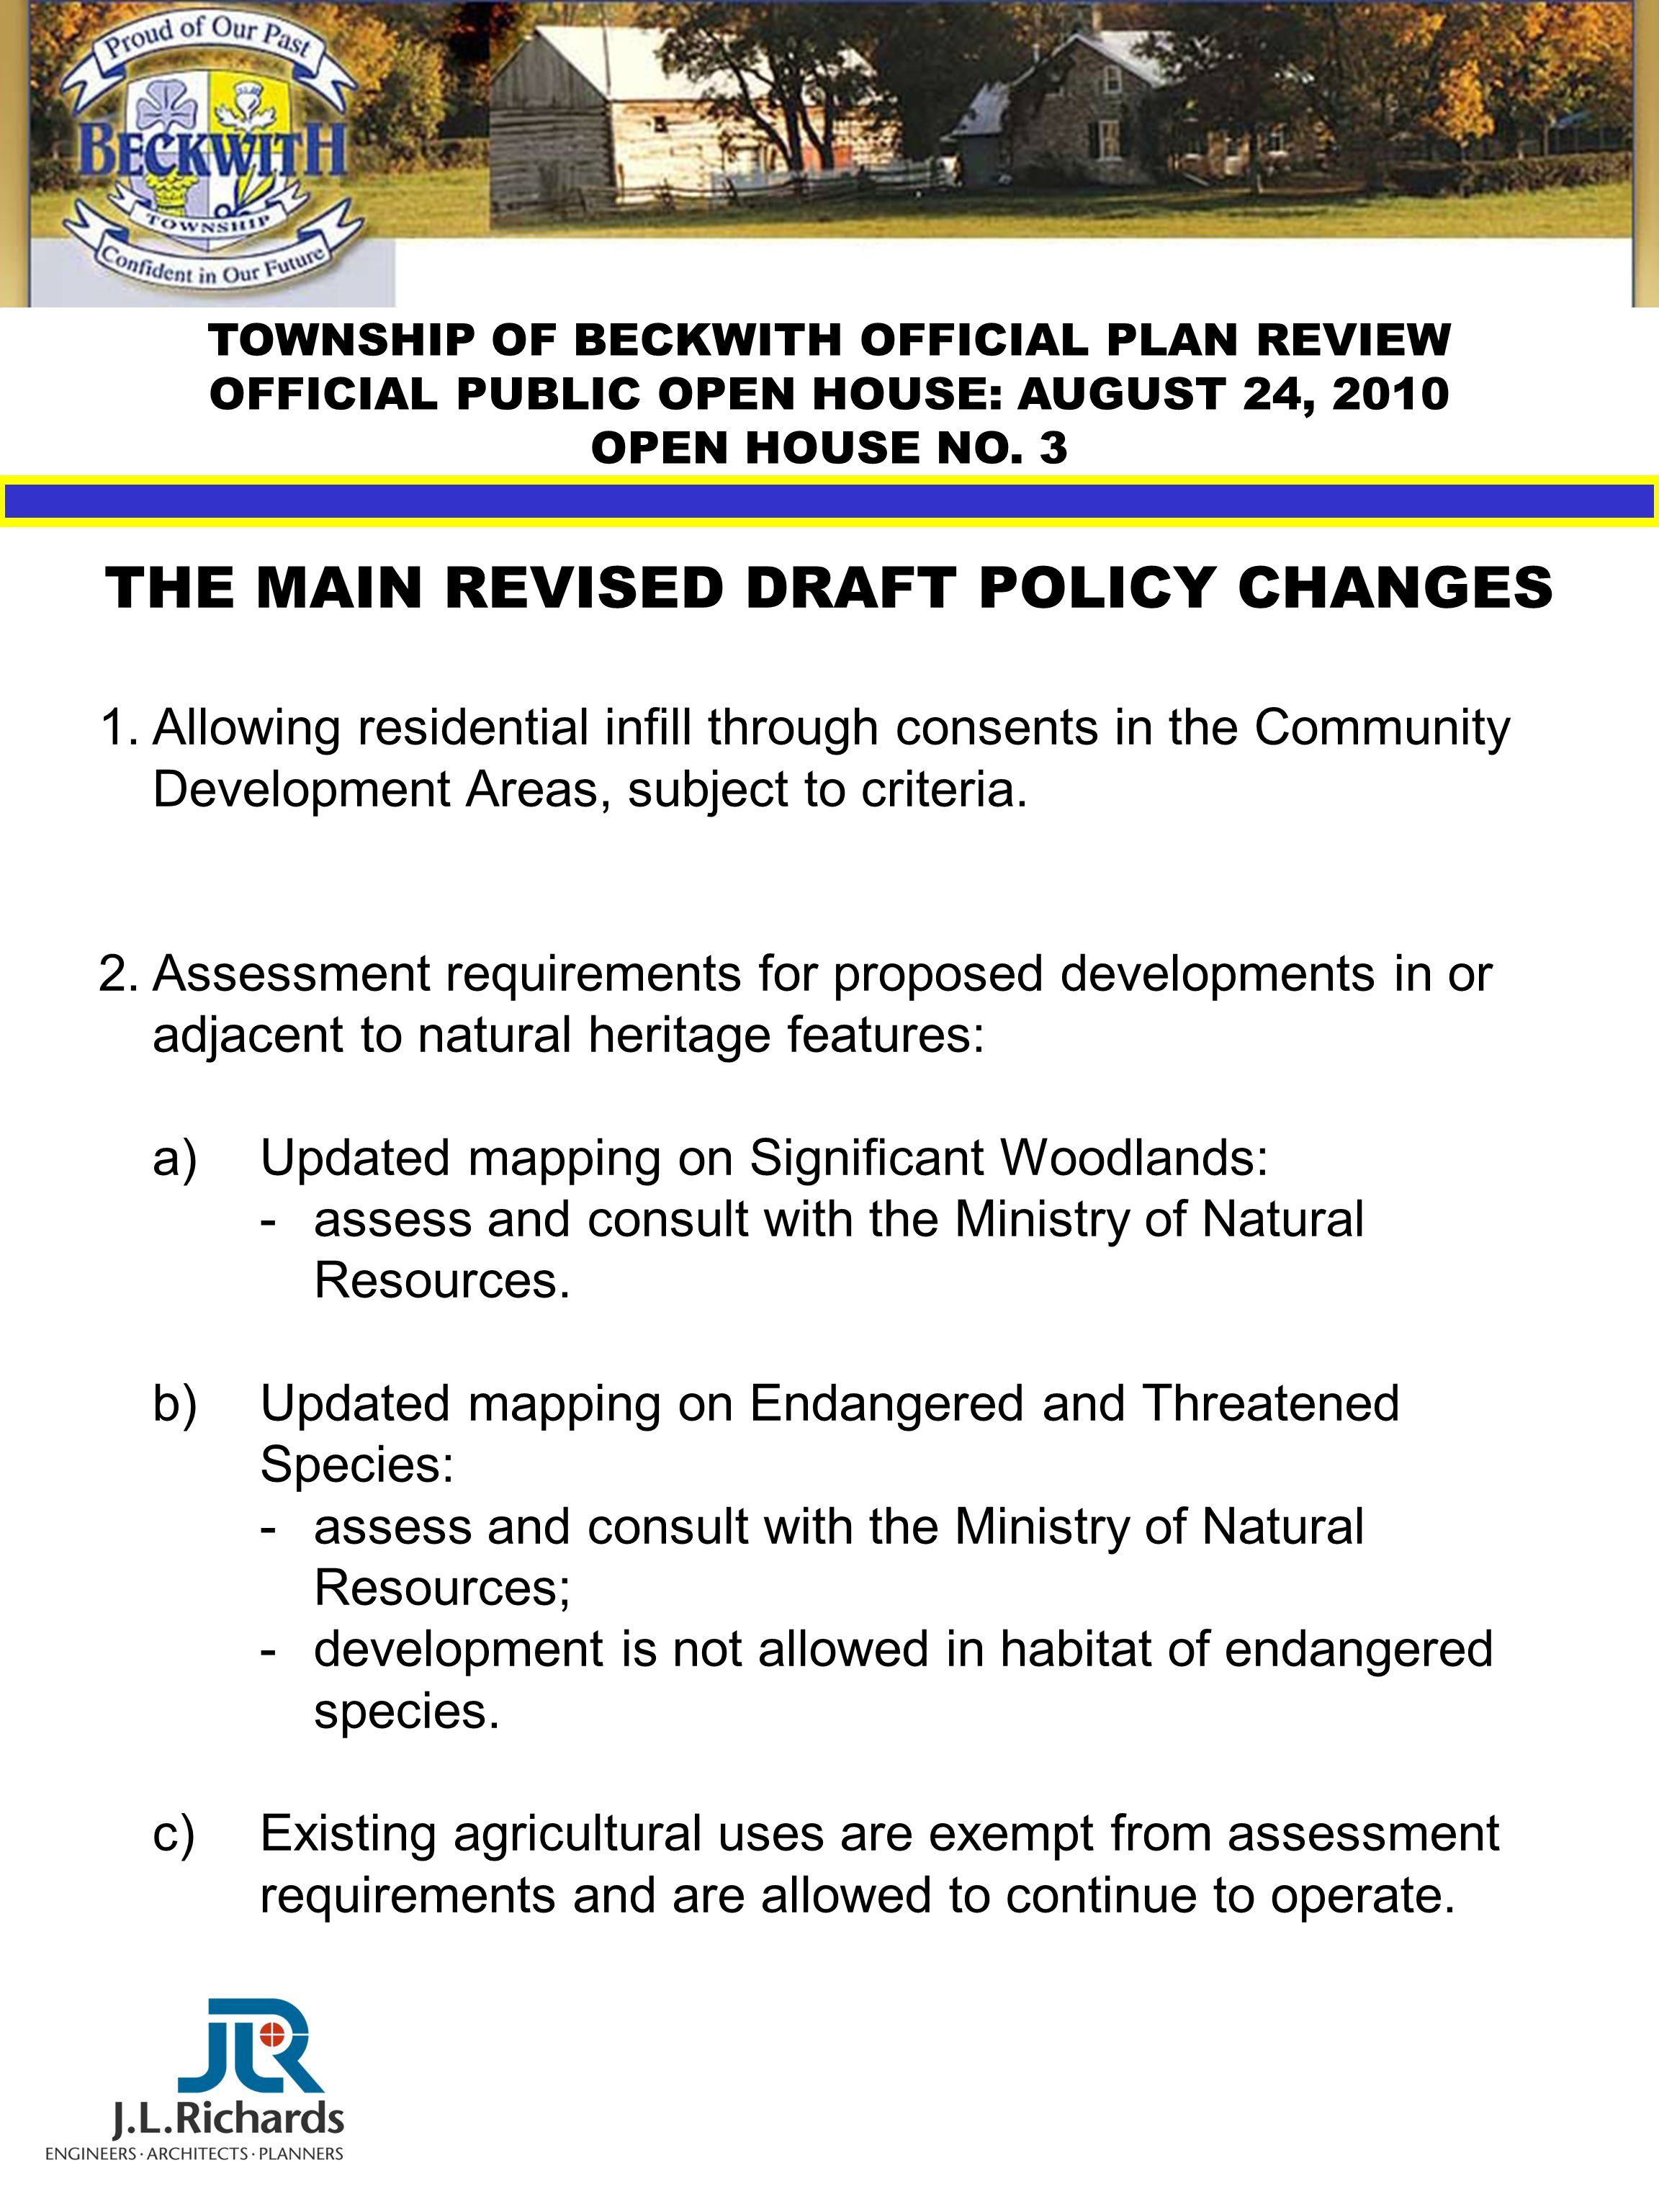 TOWNSHIP OF BECKWITH OFFICIAL PLAN REVIEW OFFICIAL PUBLIC OPEN HOUSE: AUGUST 24, 2010 OPEN HOUSE NO. 3 THE MAIN REVISED DRAFT POLICY CHANGES 1.Allowin